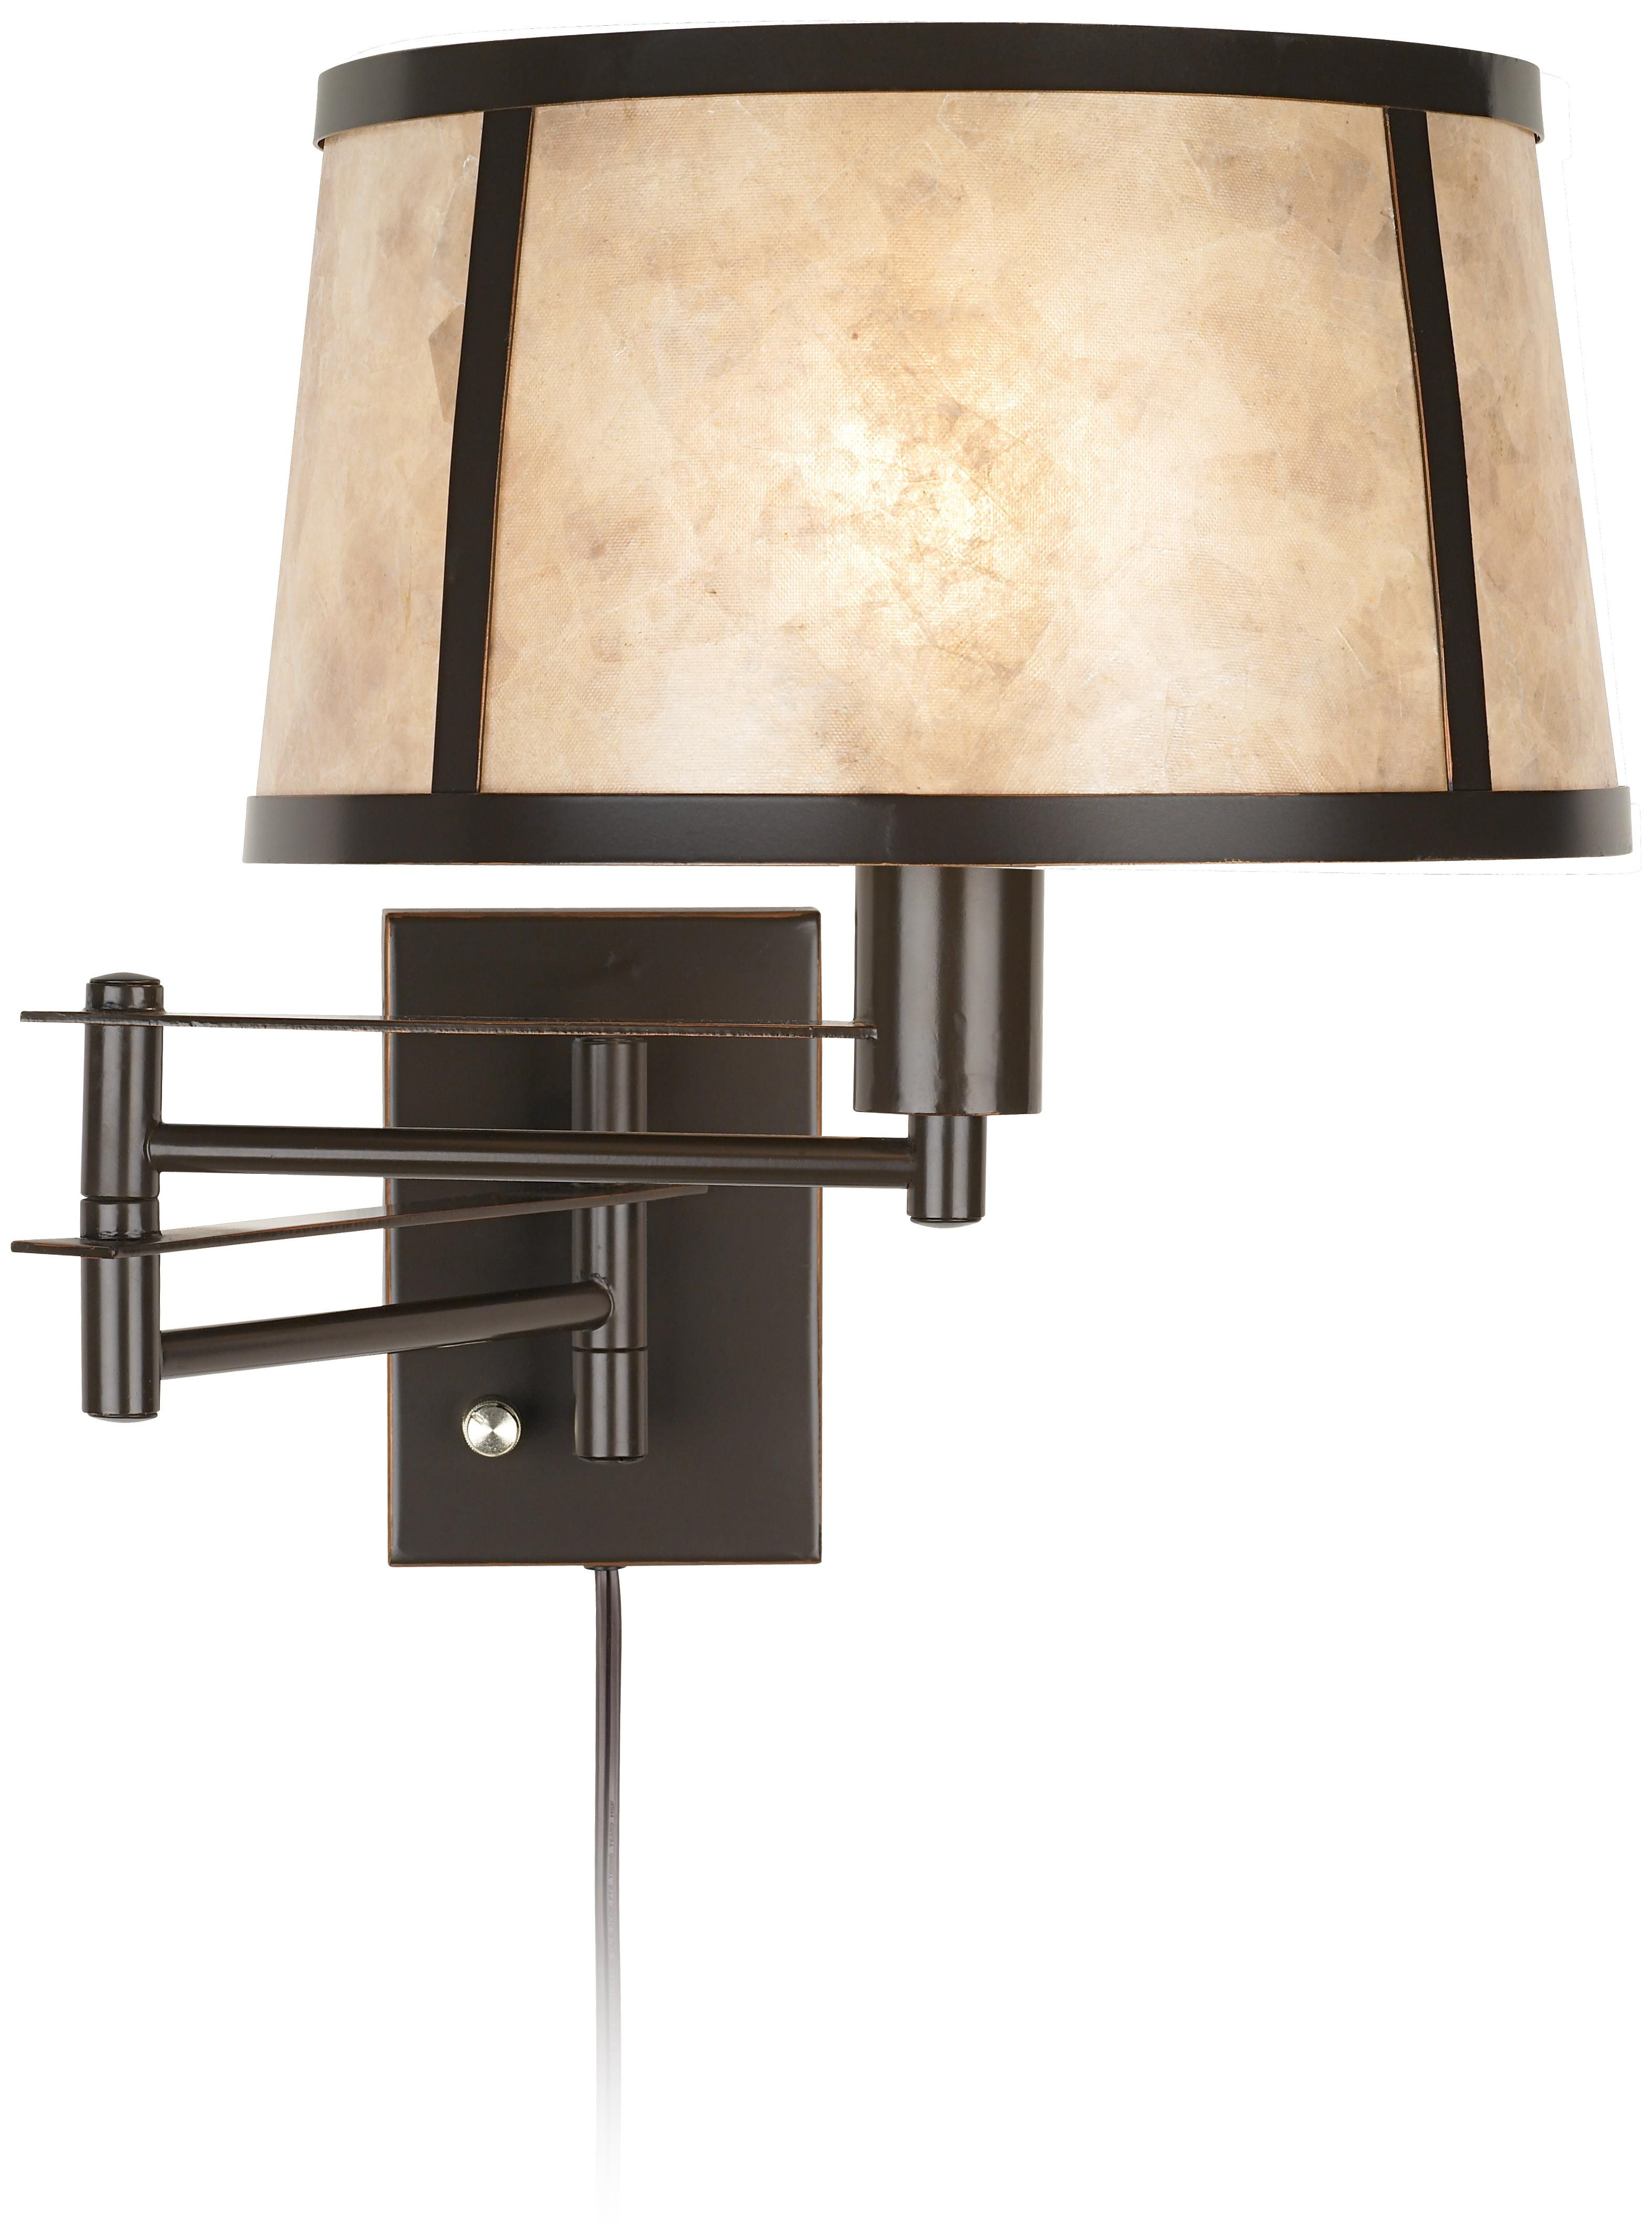 well wall ig the popular ikea astonishing light lamp snoig plug most as white sn decor in lamps lights